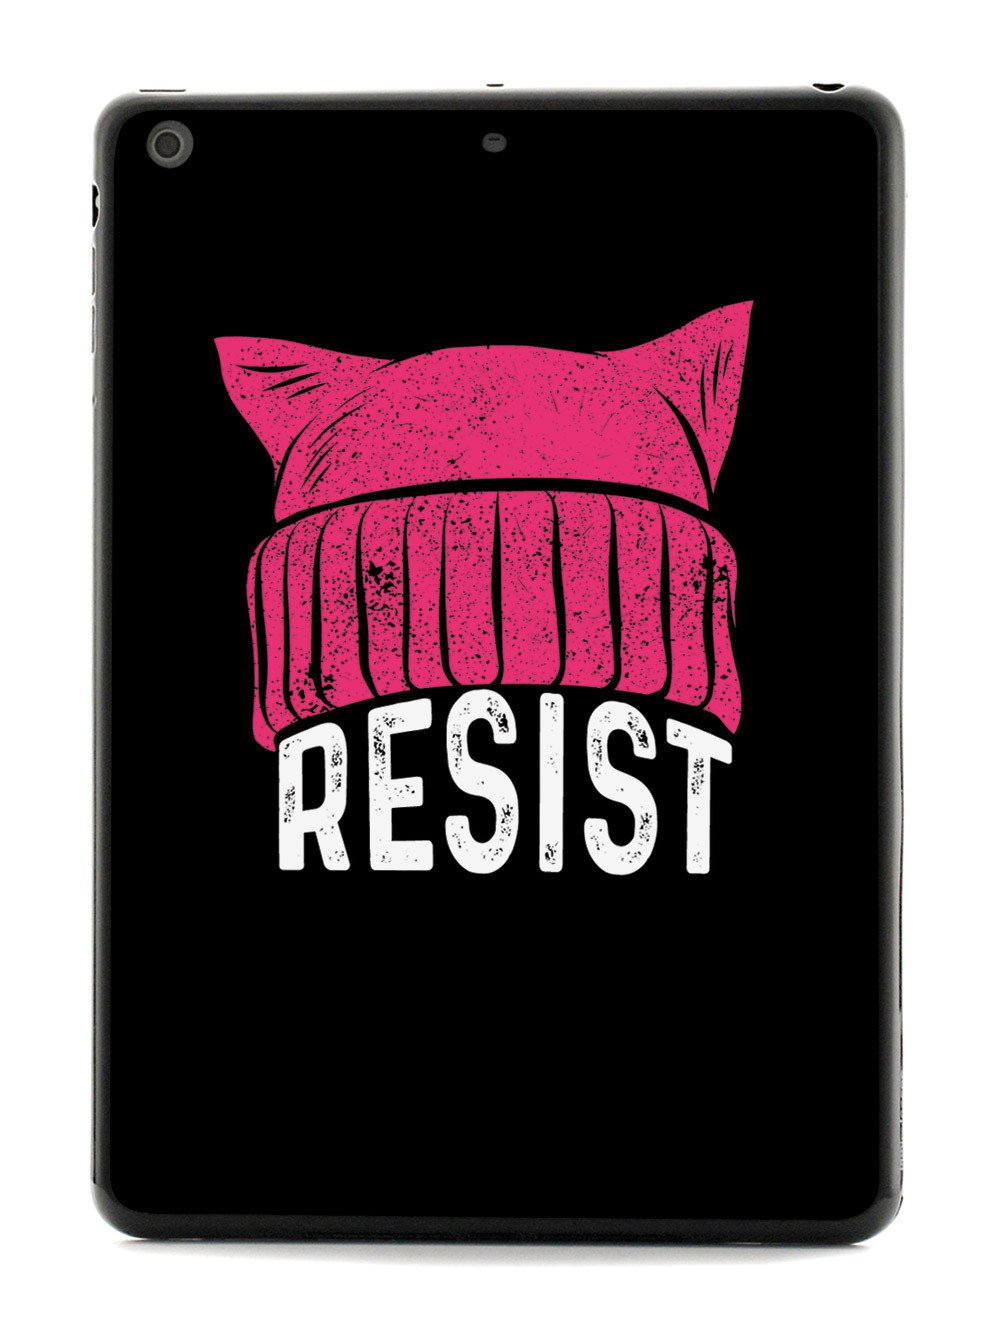 RESIST - Pussy Hat - Black Case - pipercleo.com